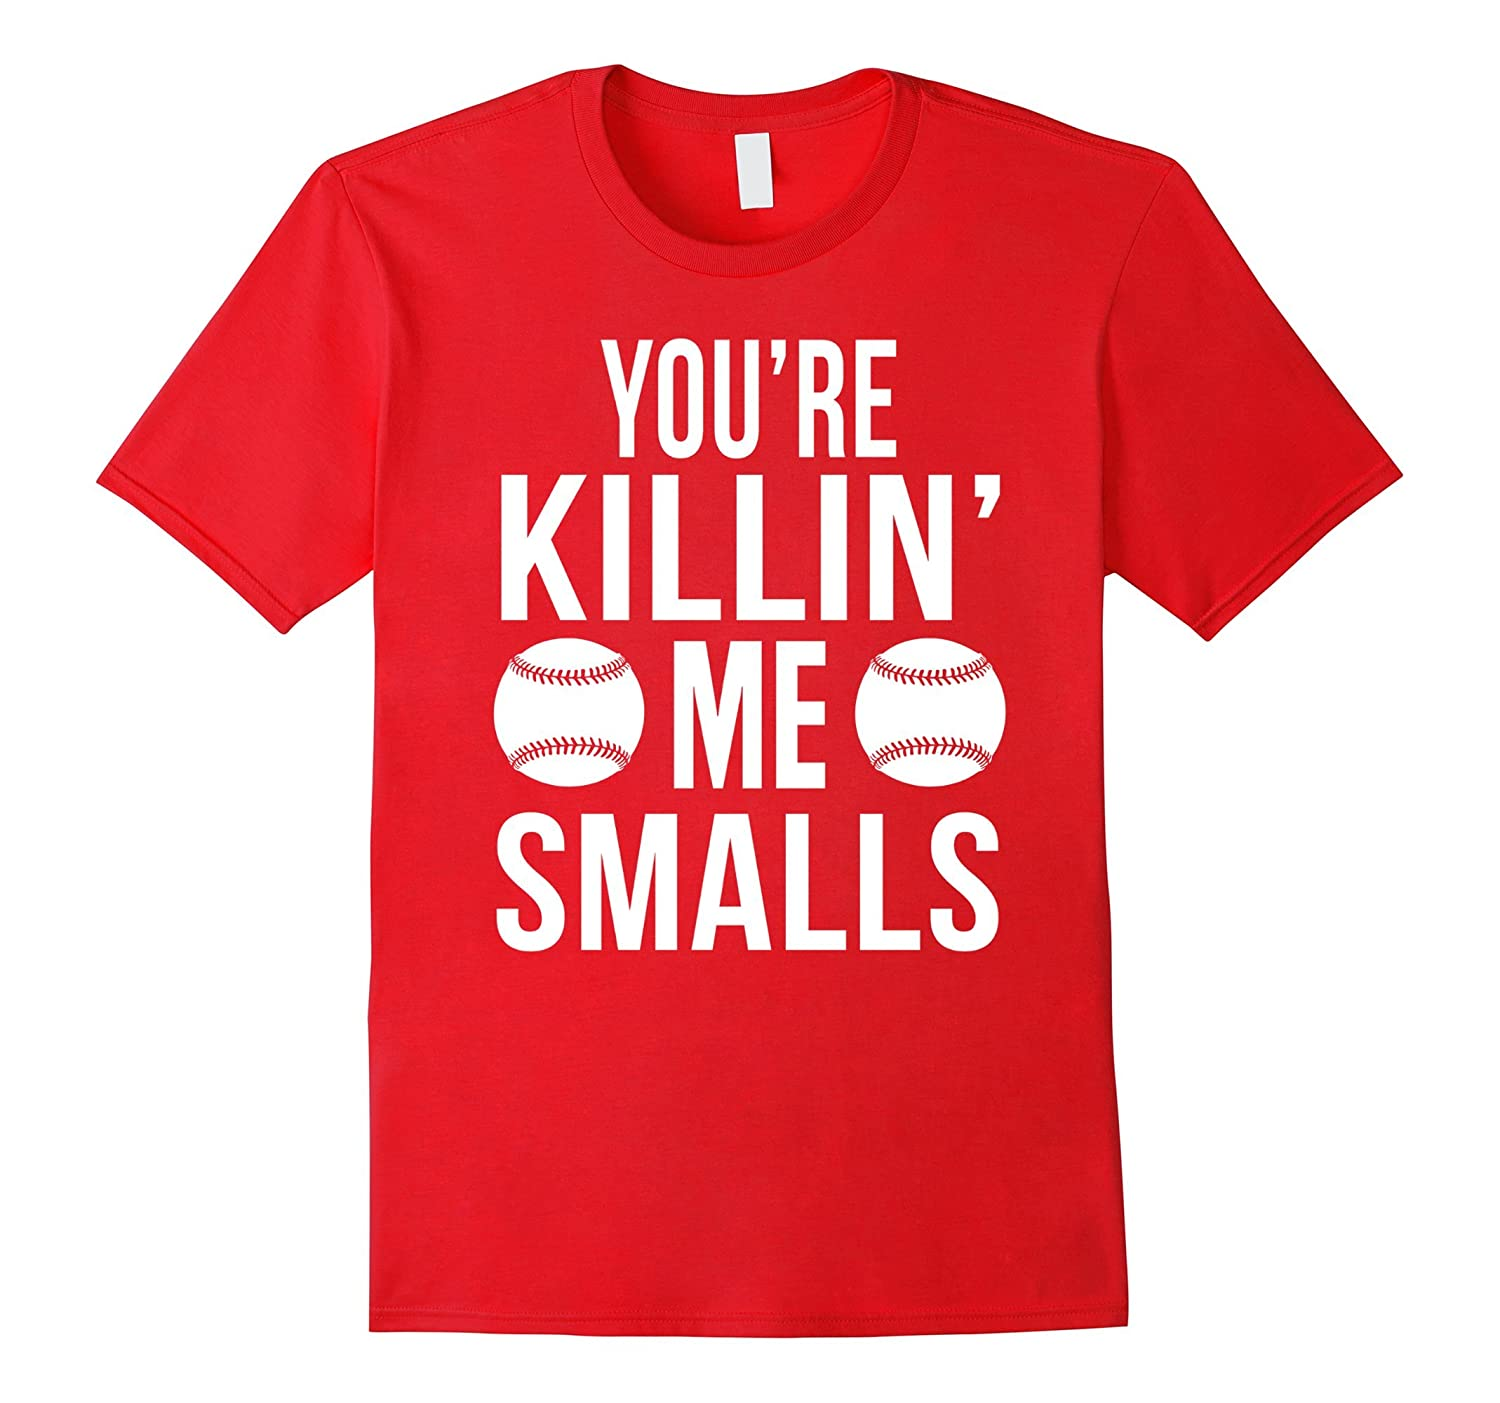 Youre Killing Smalls Me - Funny Baseball Movie Quote Shirt-TH